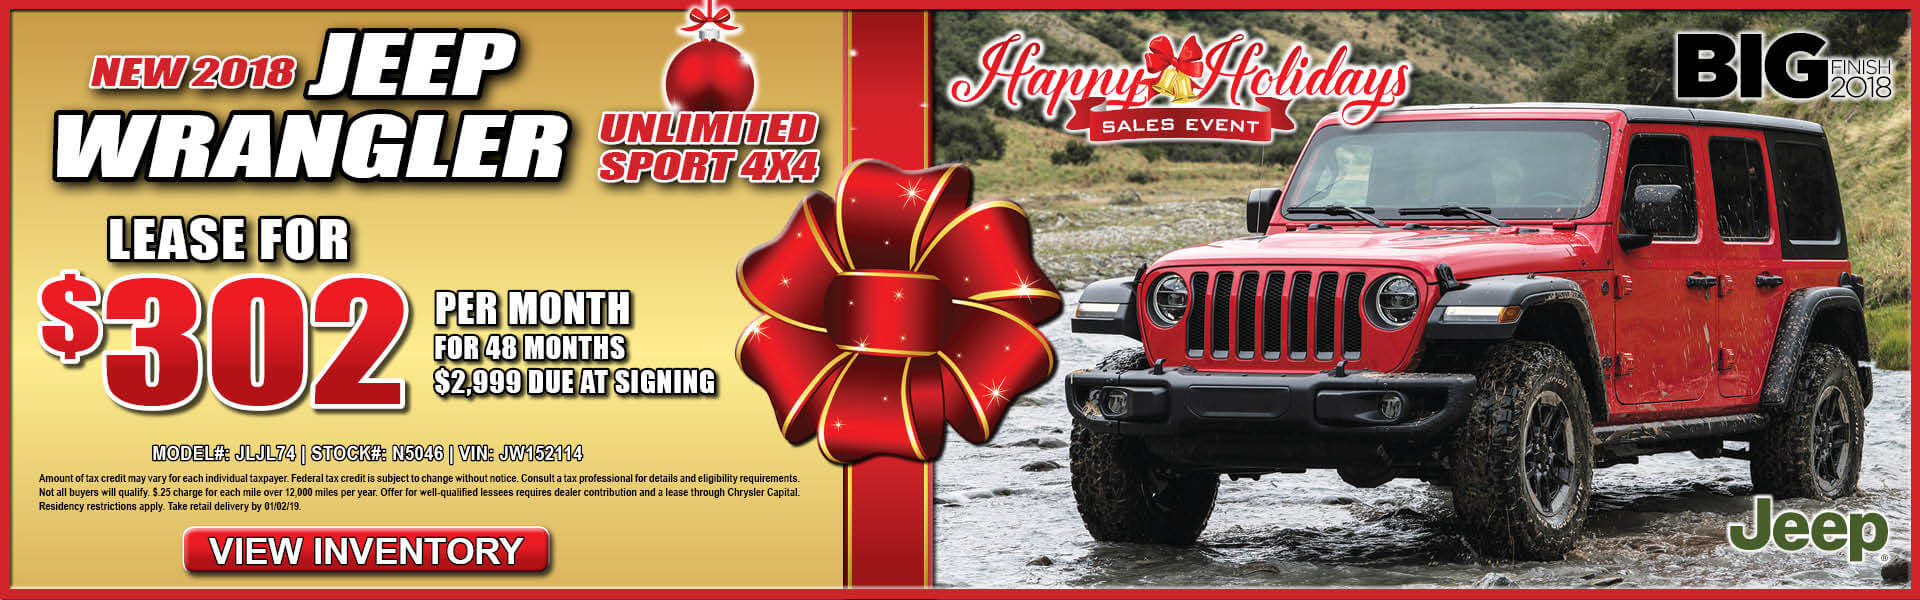 Jeep Wrangler $302 Lease